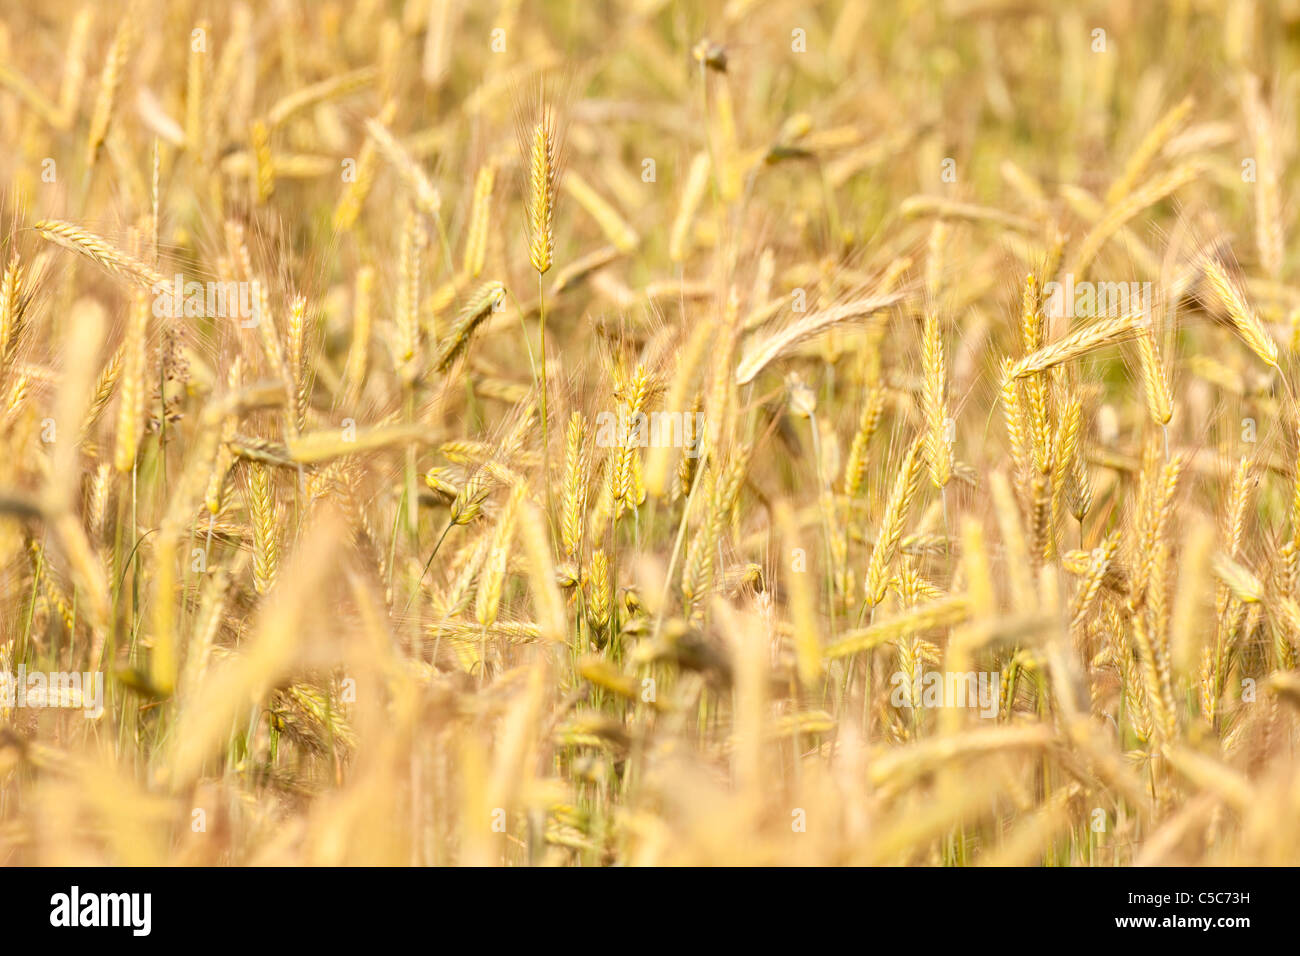 Close up di orzo in un campo pronto per la mietitura Immagini Stock